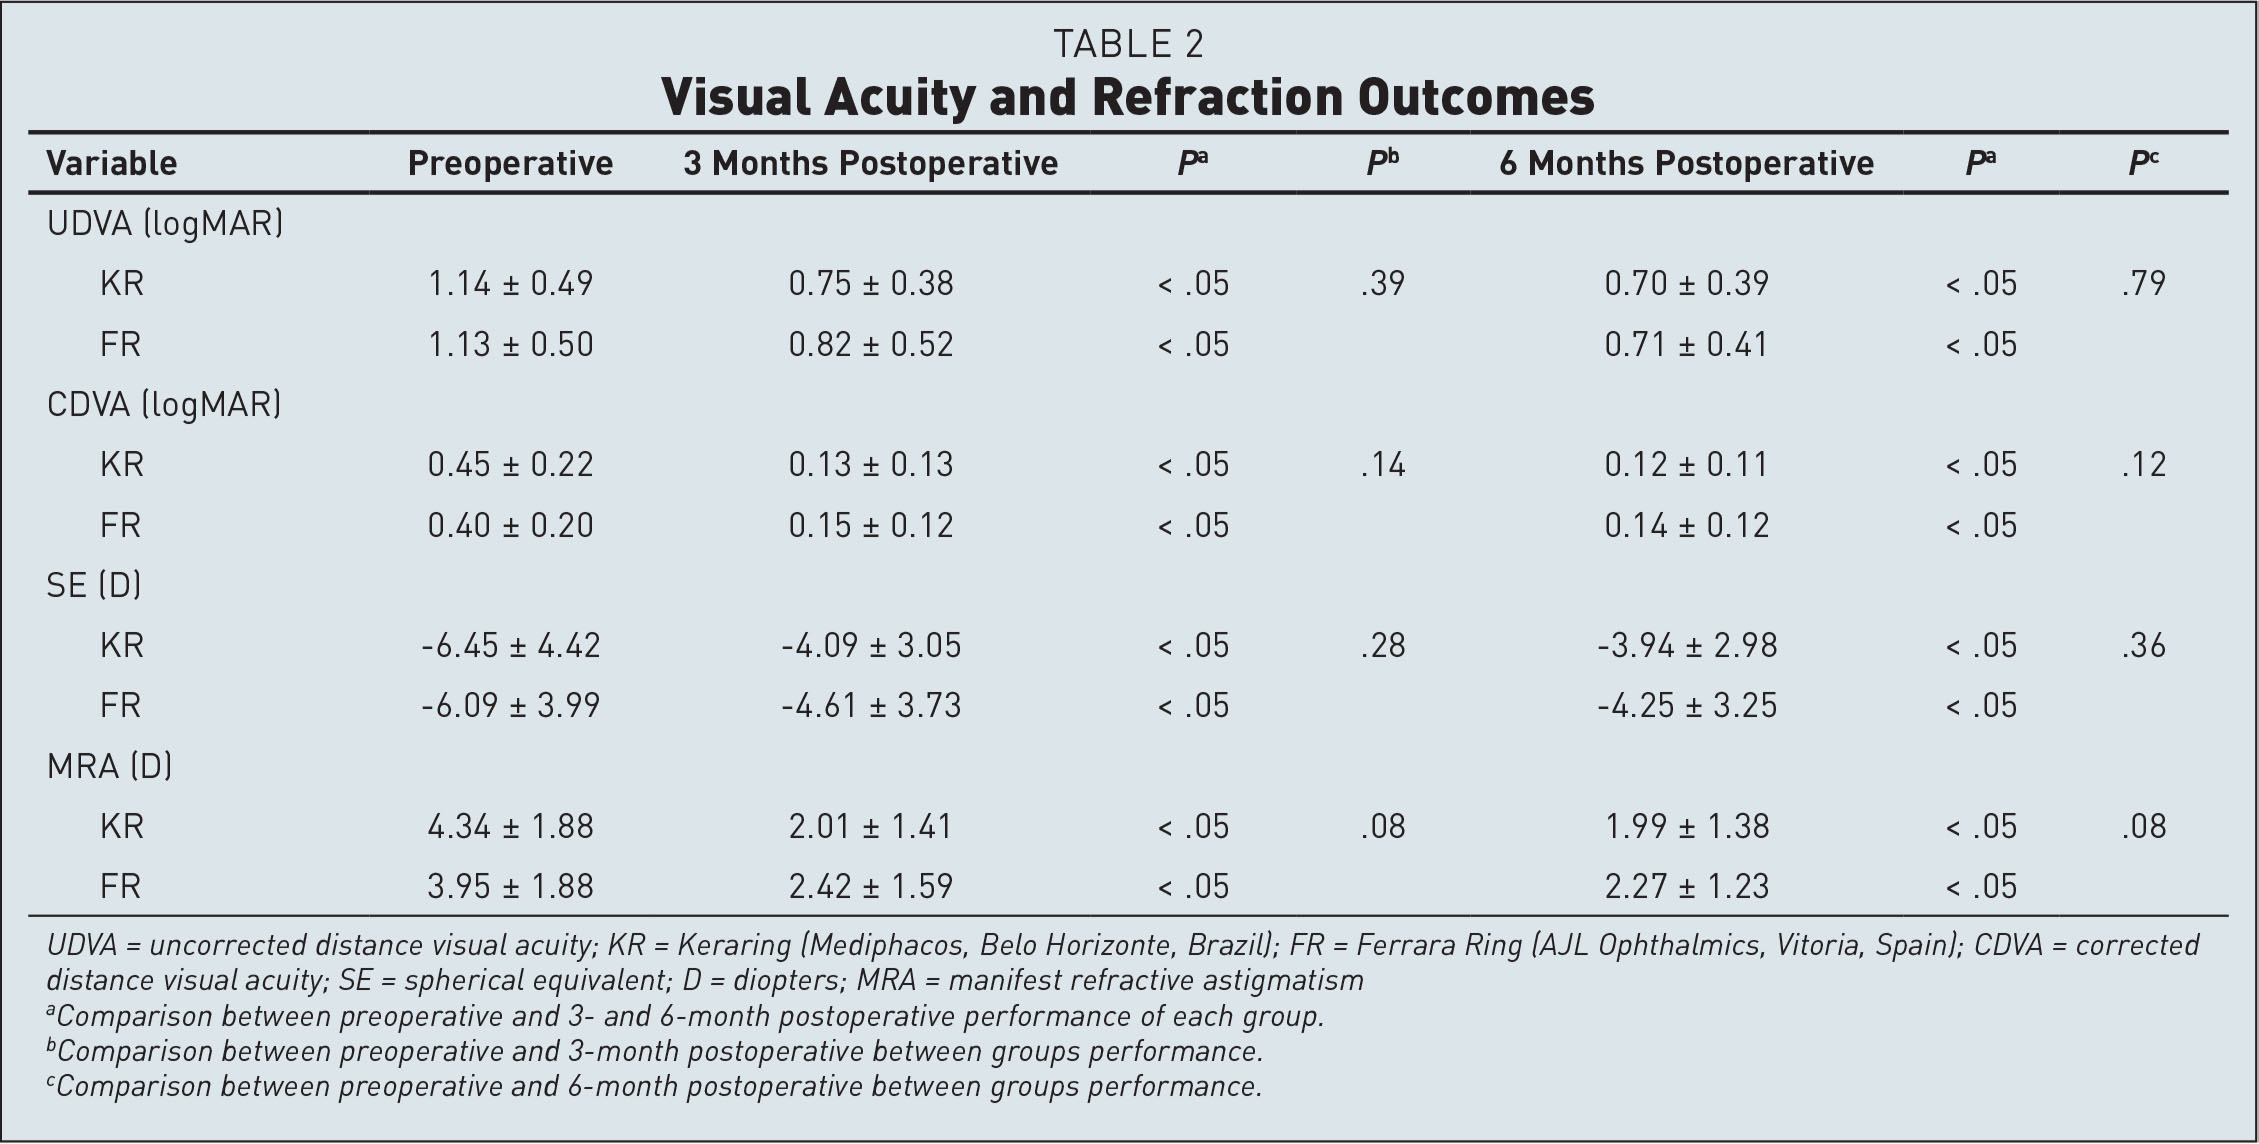 Visual Acuity and Refraction Outcomes